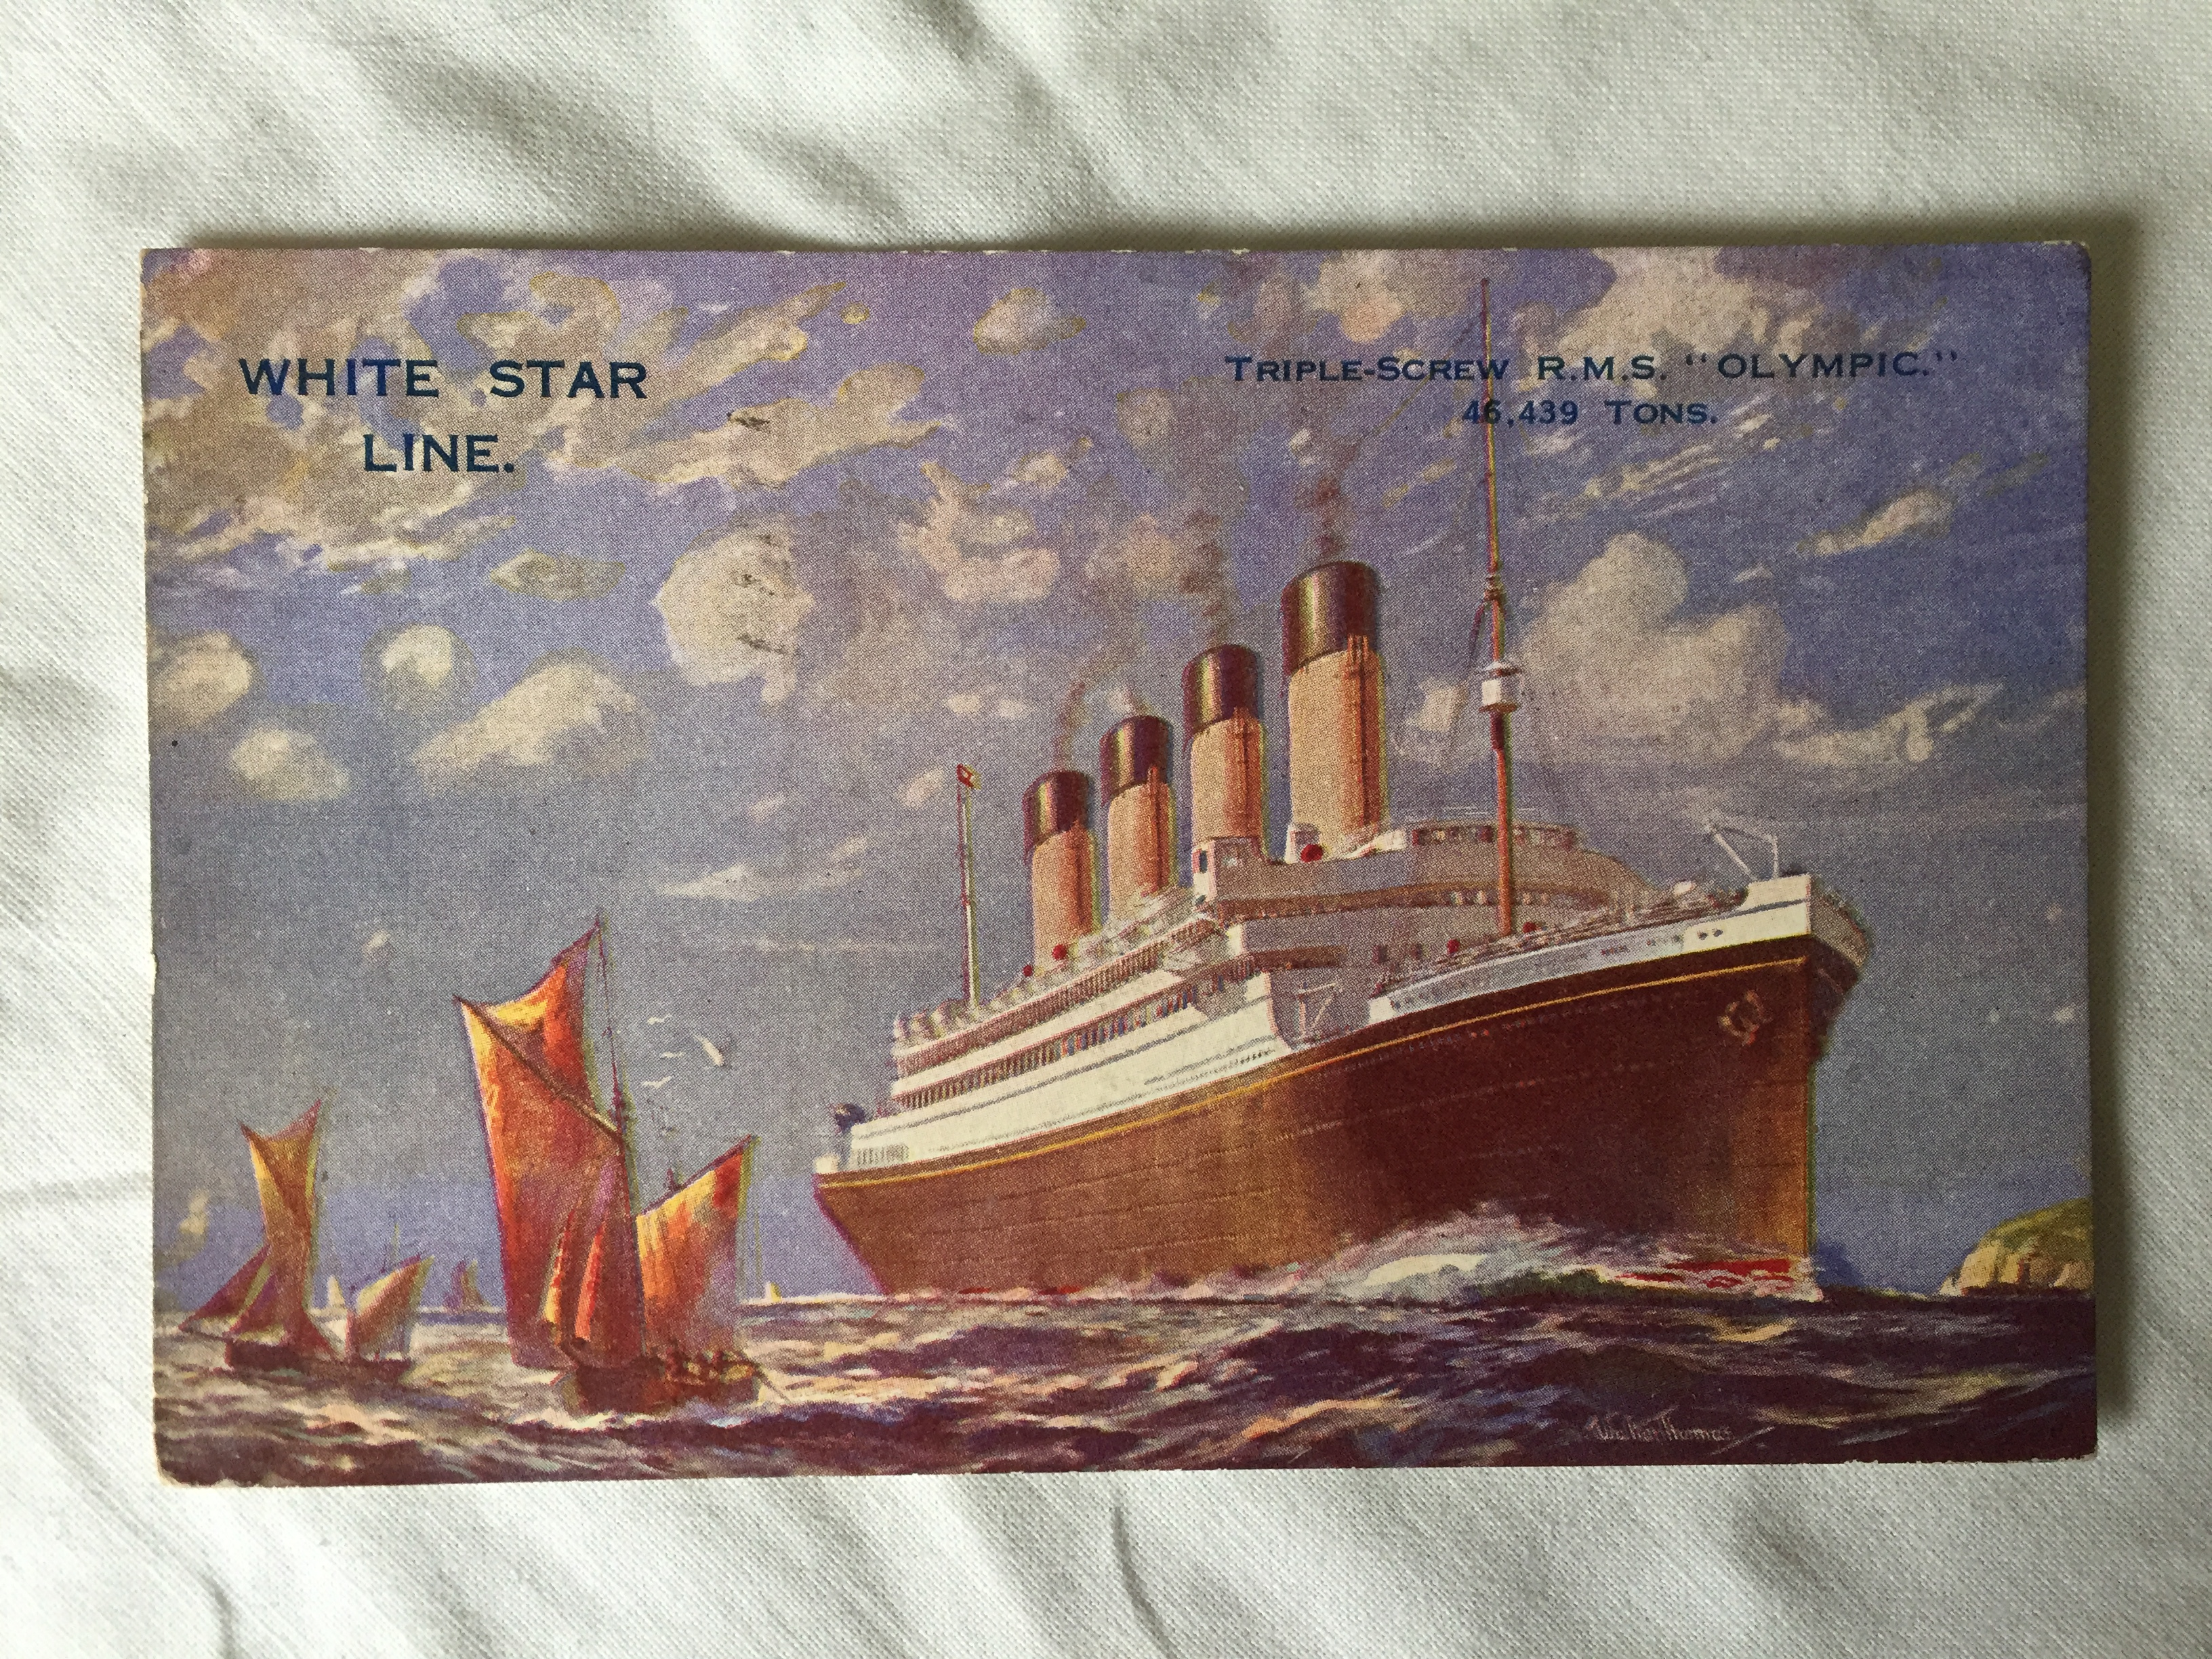 USED COLOUR POSTCARD FROM THE RMS OLYMPIC DATED 1928